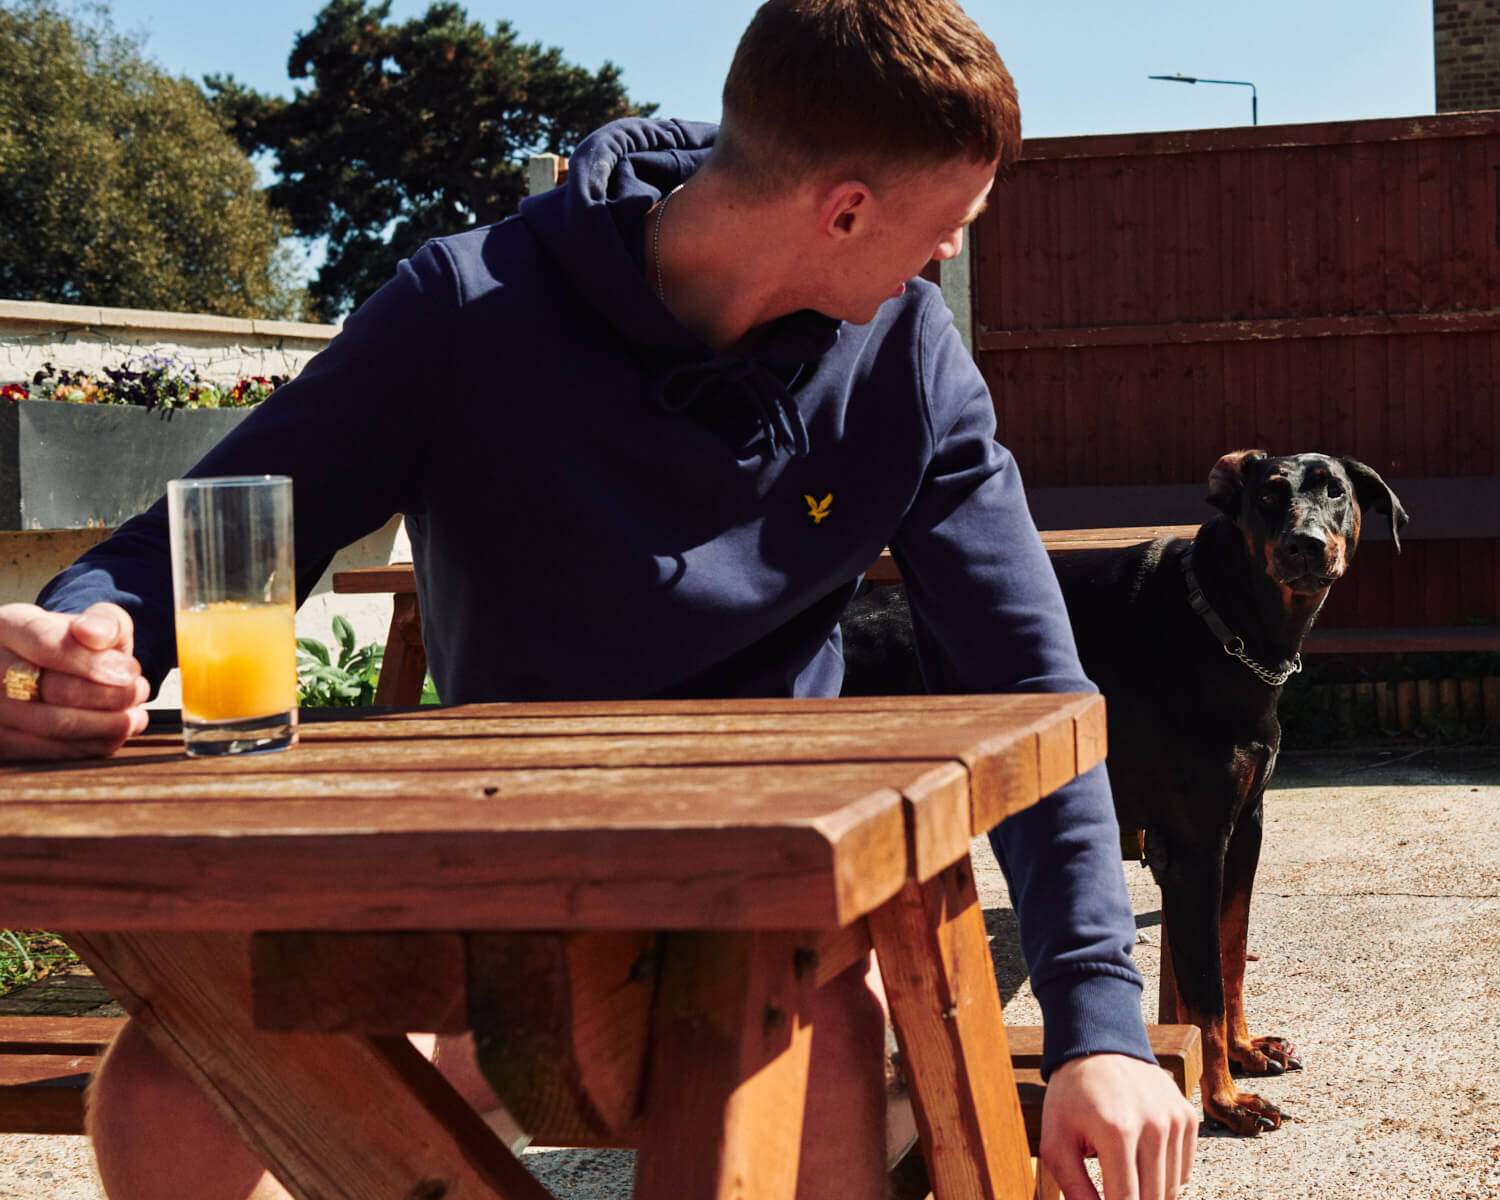 Dog in pub beer garden, by lifestyle photographer Tim Cole